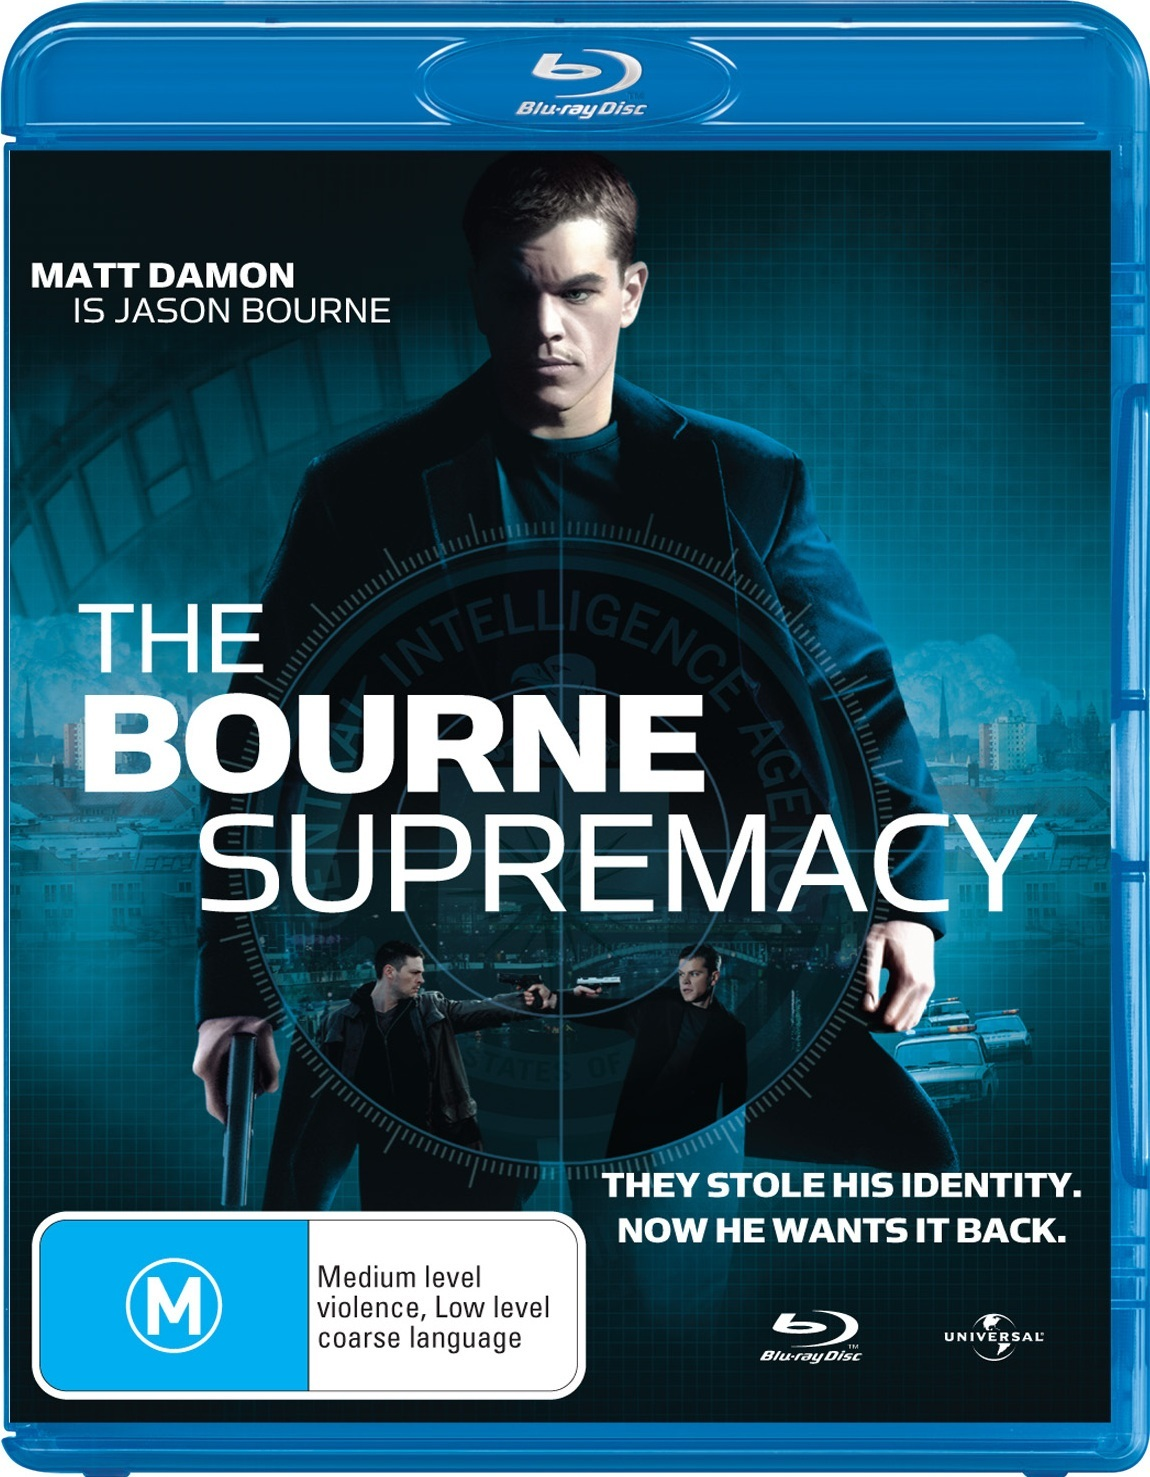 The Bourne Supremacy on Blu-ray image